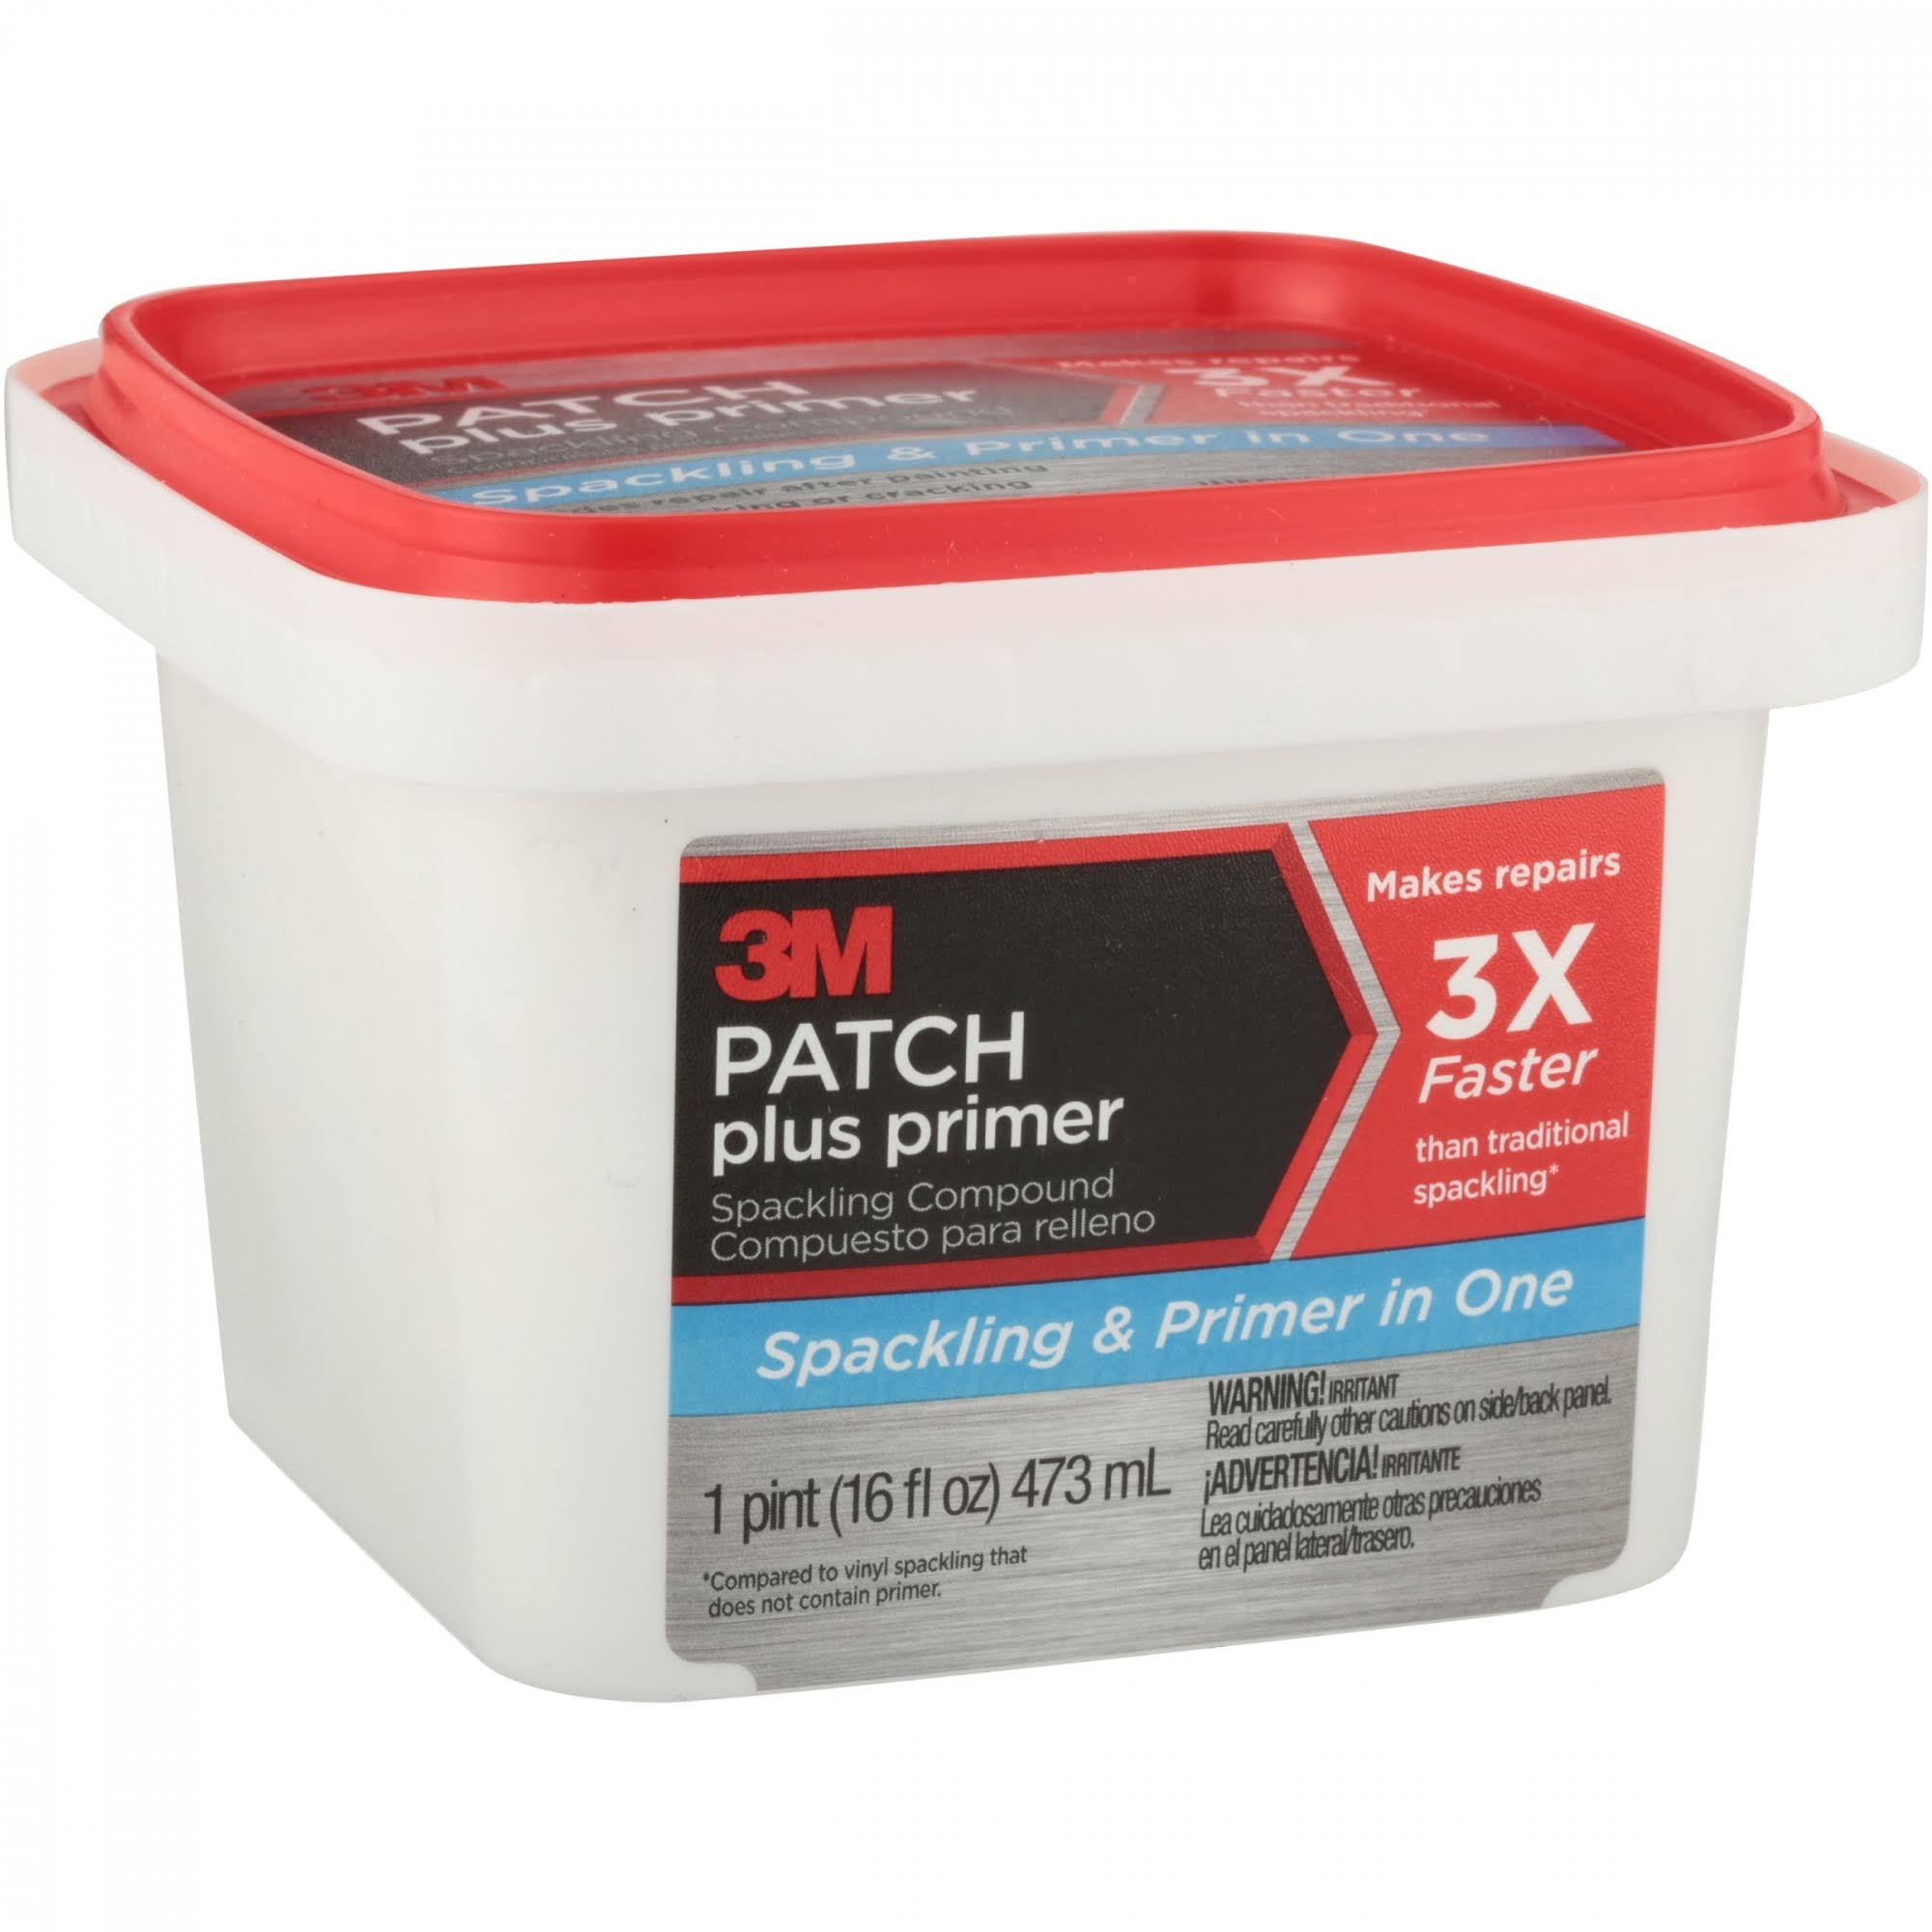 3M Patch Plus Primer Lightweight Spackling - 16oz